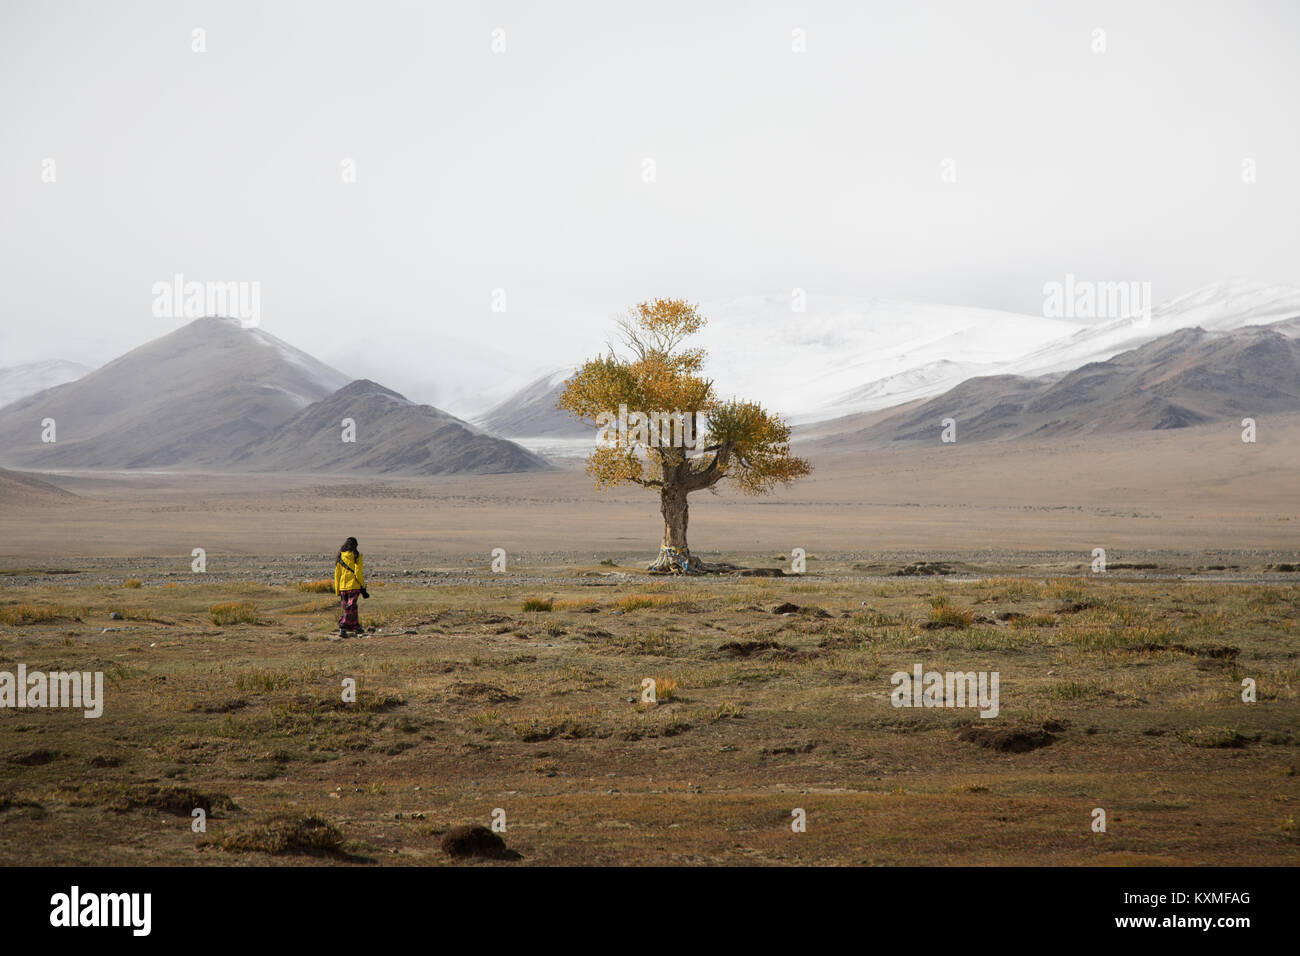 Lonely tree fall yellow leafs cloudy foggy winter snowy mountains Mongolia steppes grasslands - Stock Image